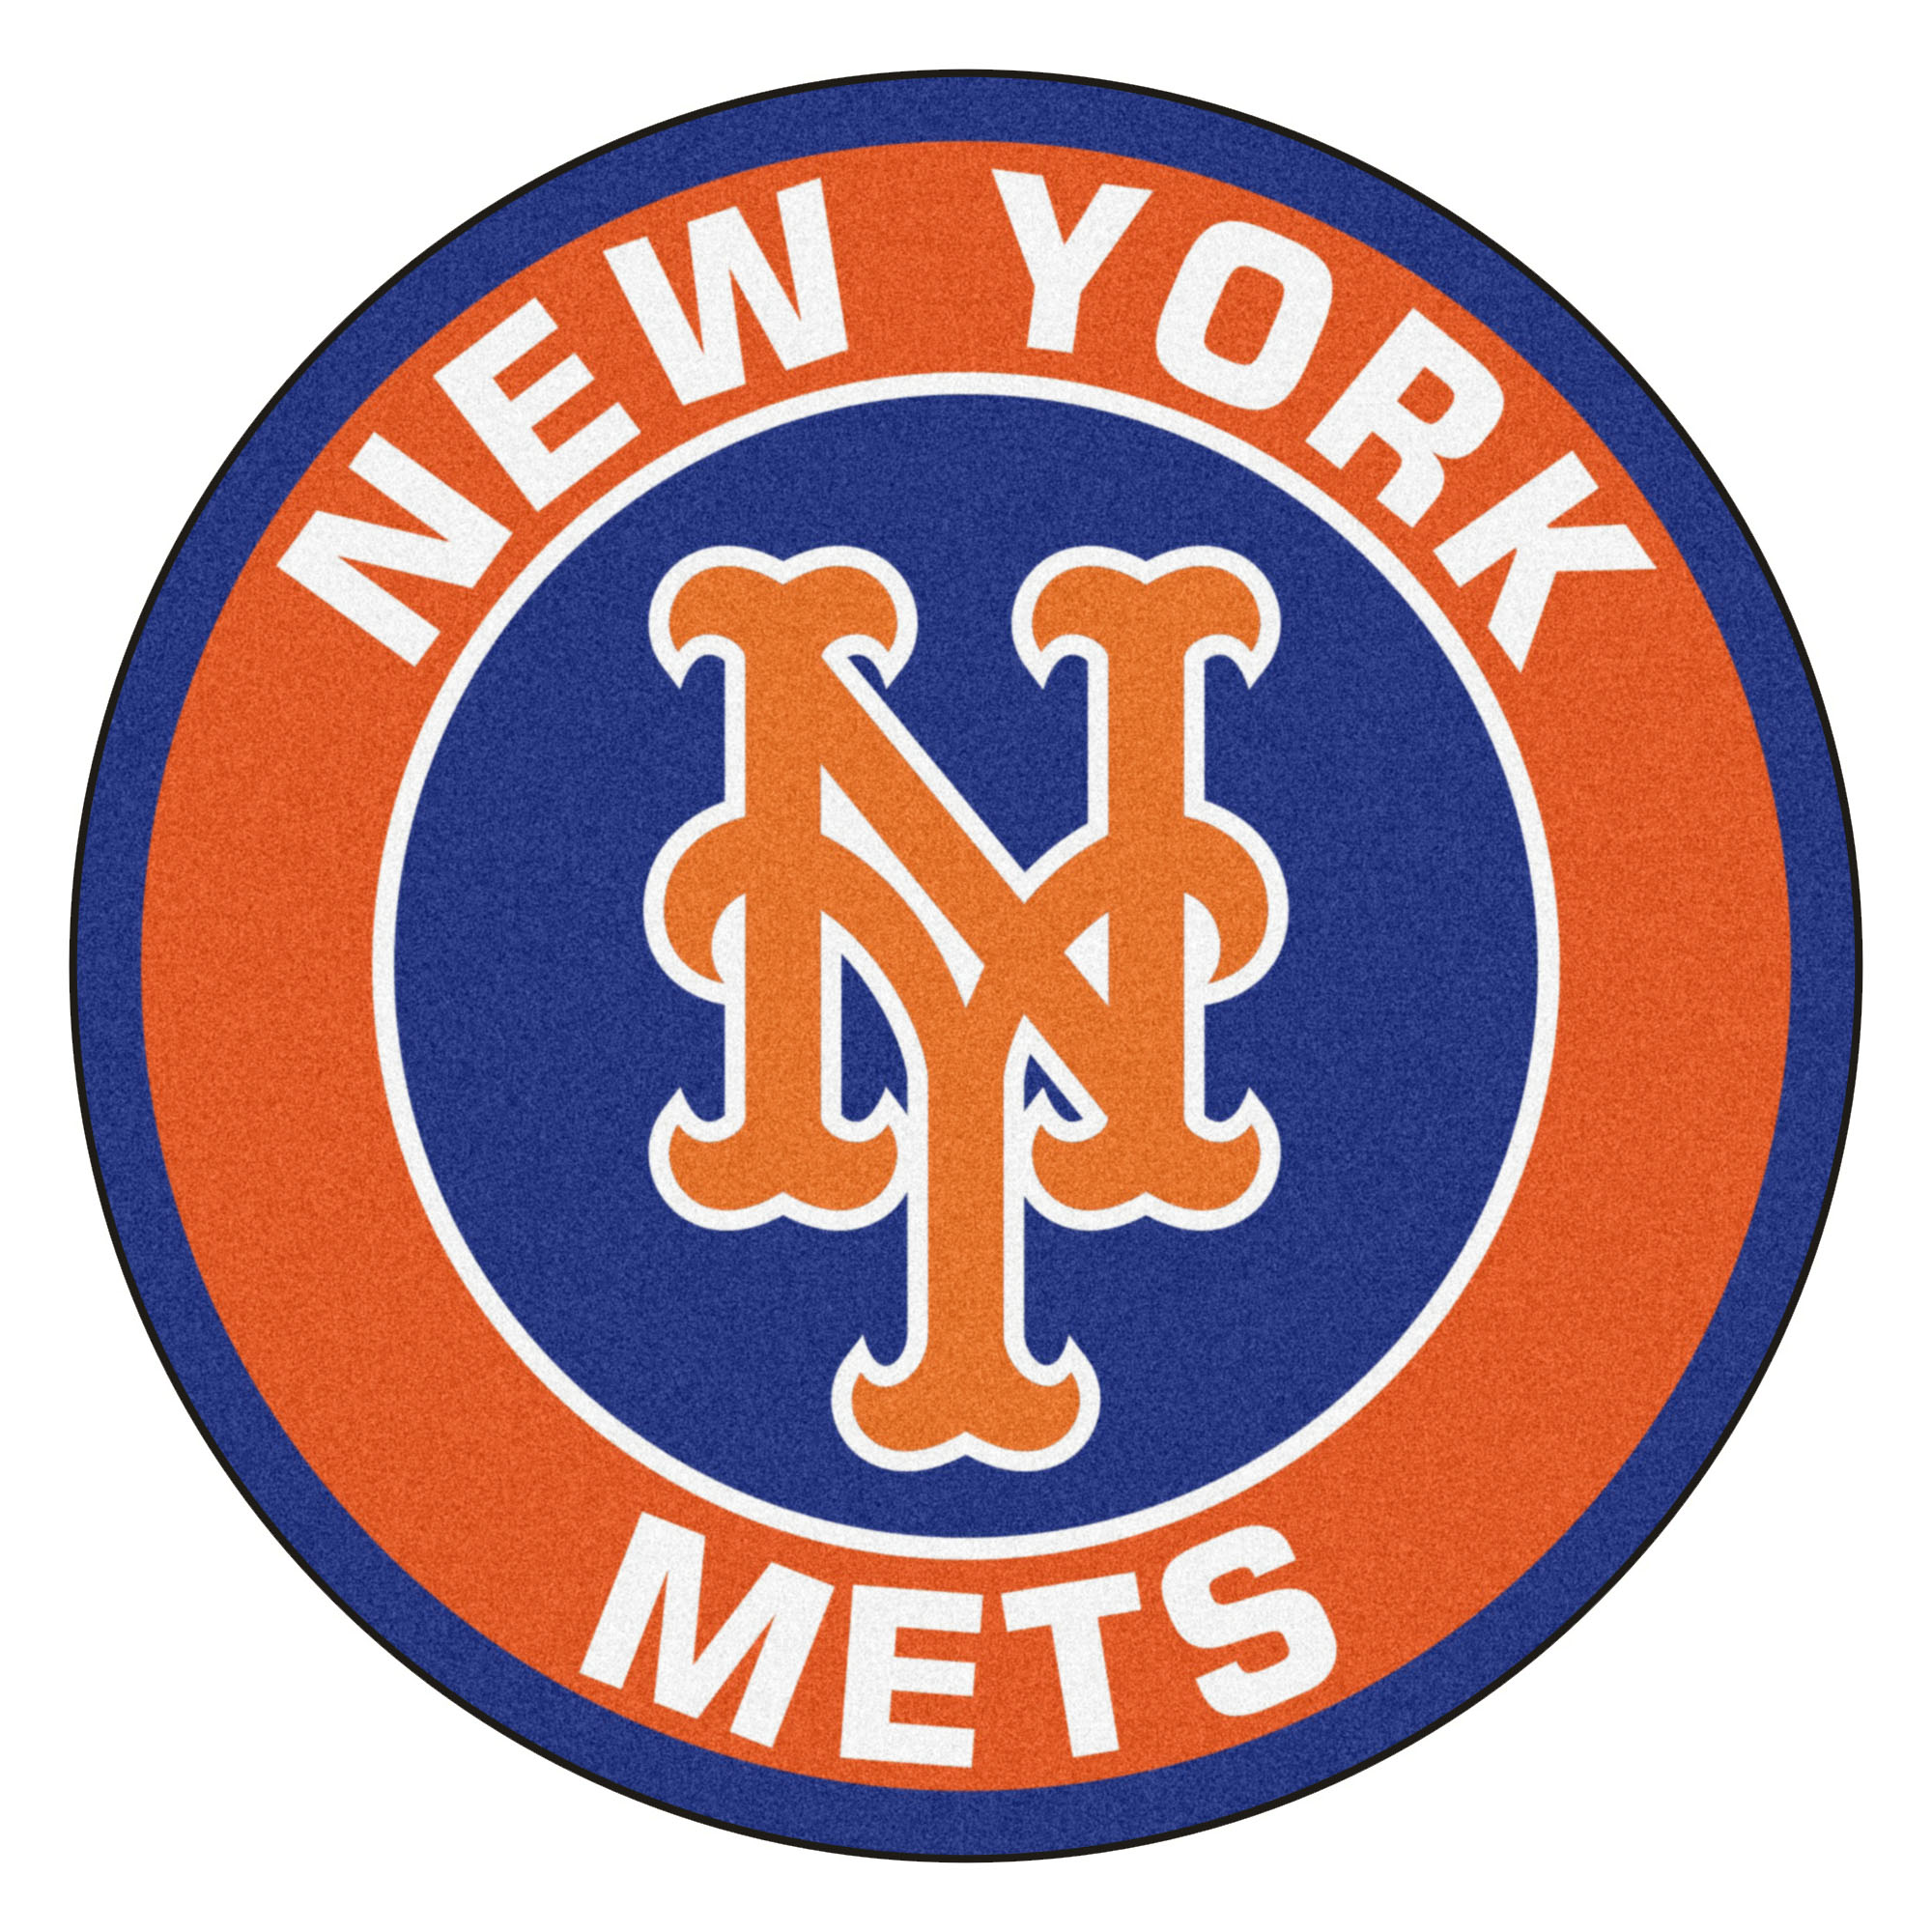 Presale Codes To Purchase Tickets For New York Mets 2016